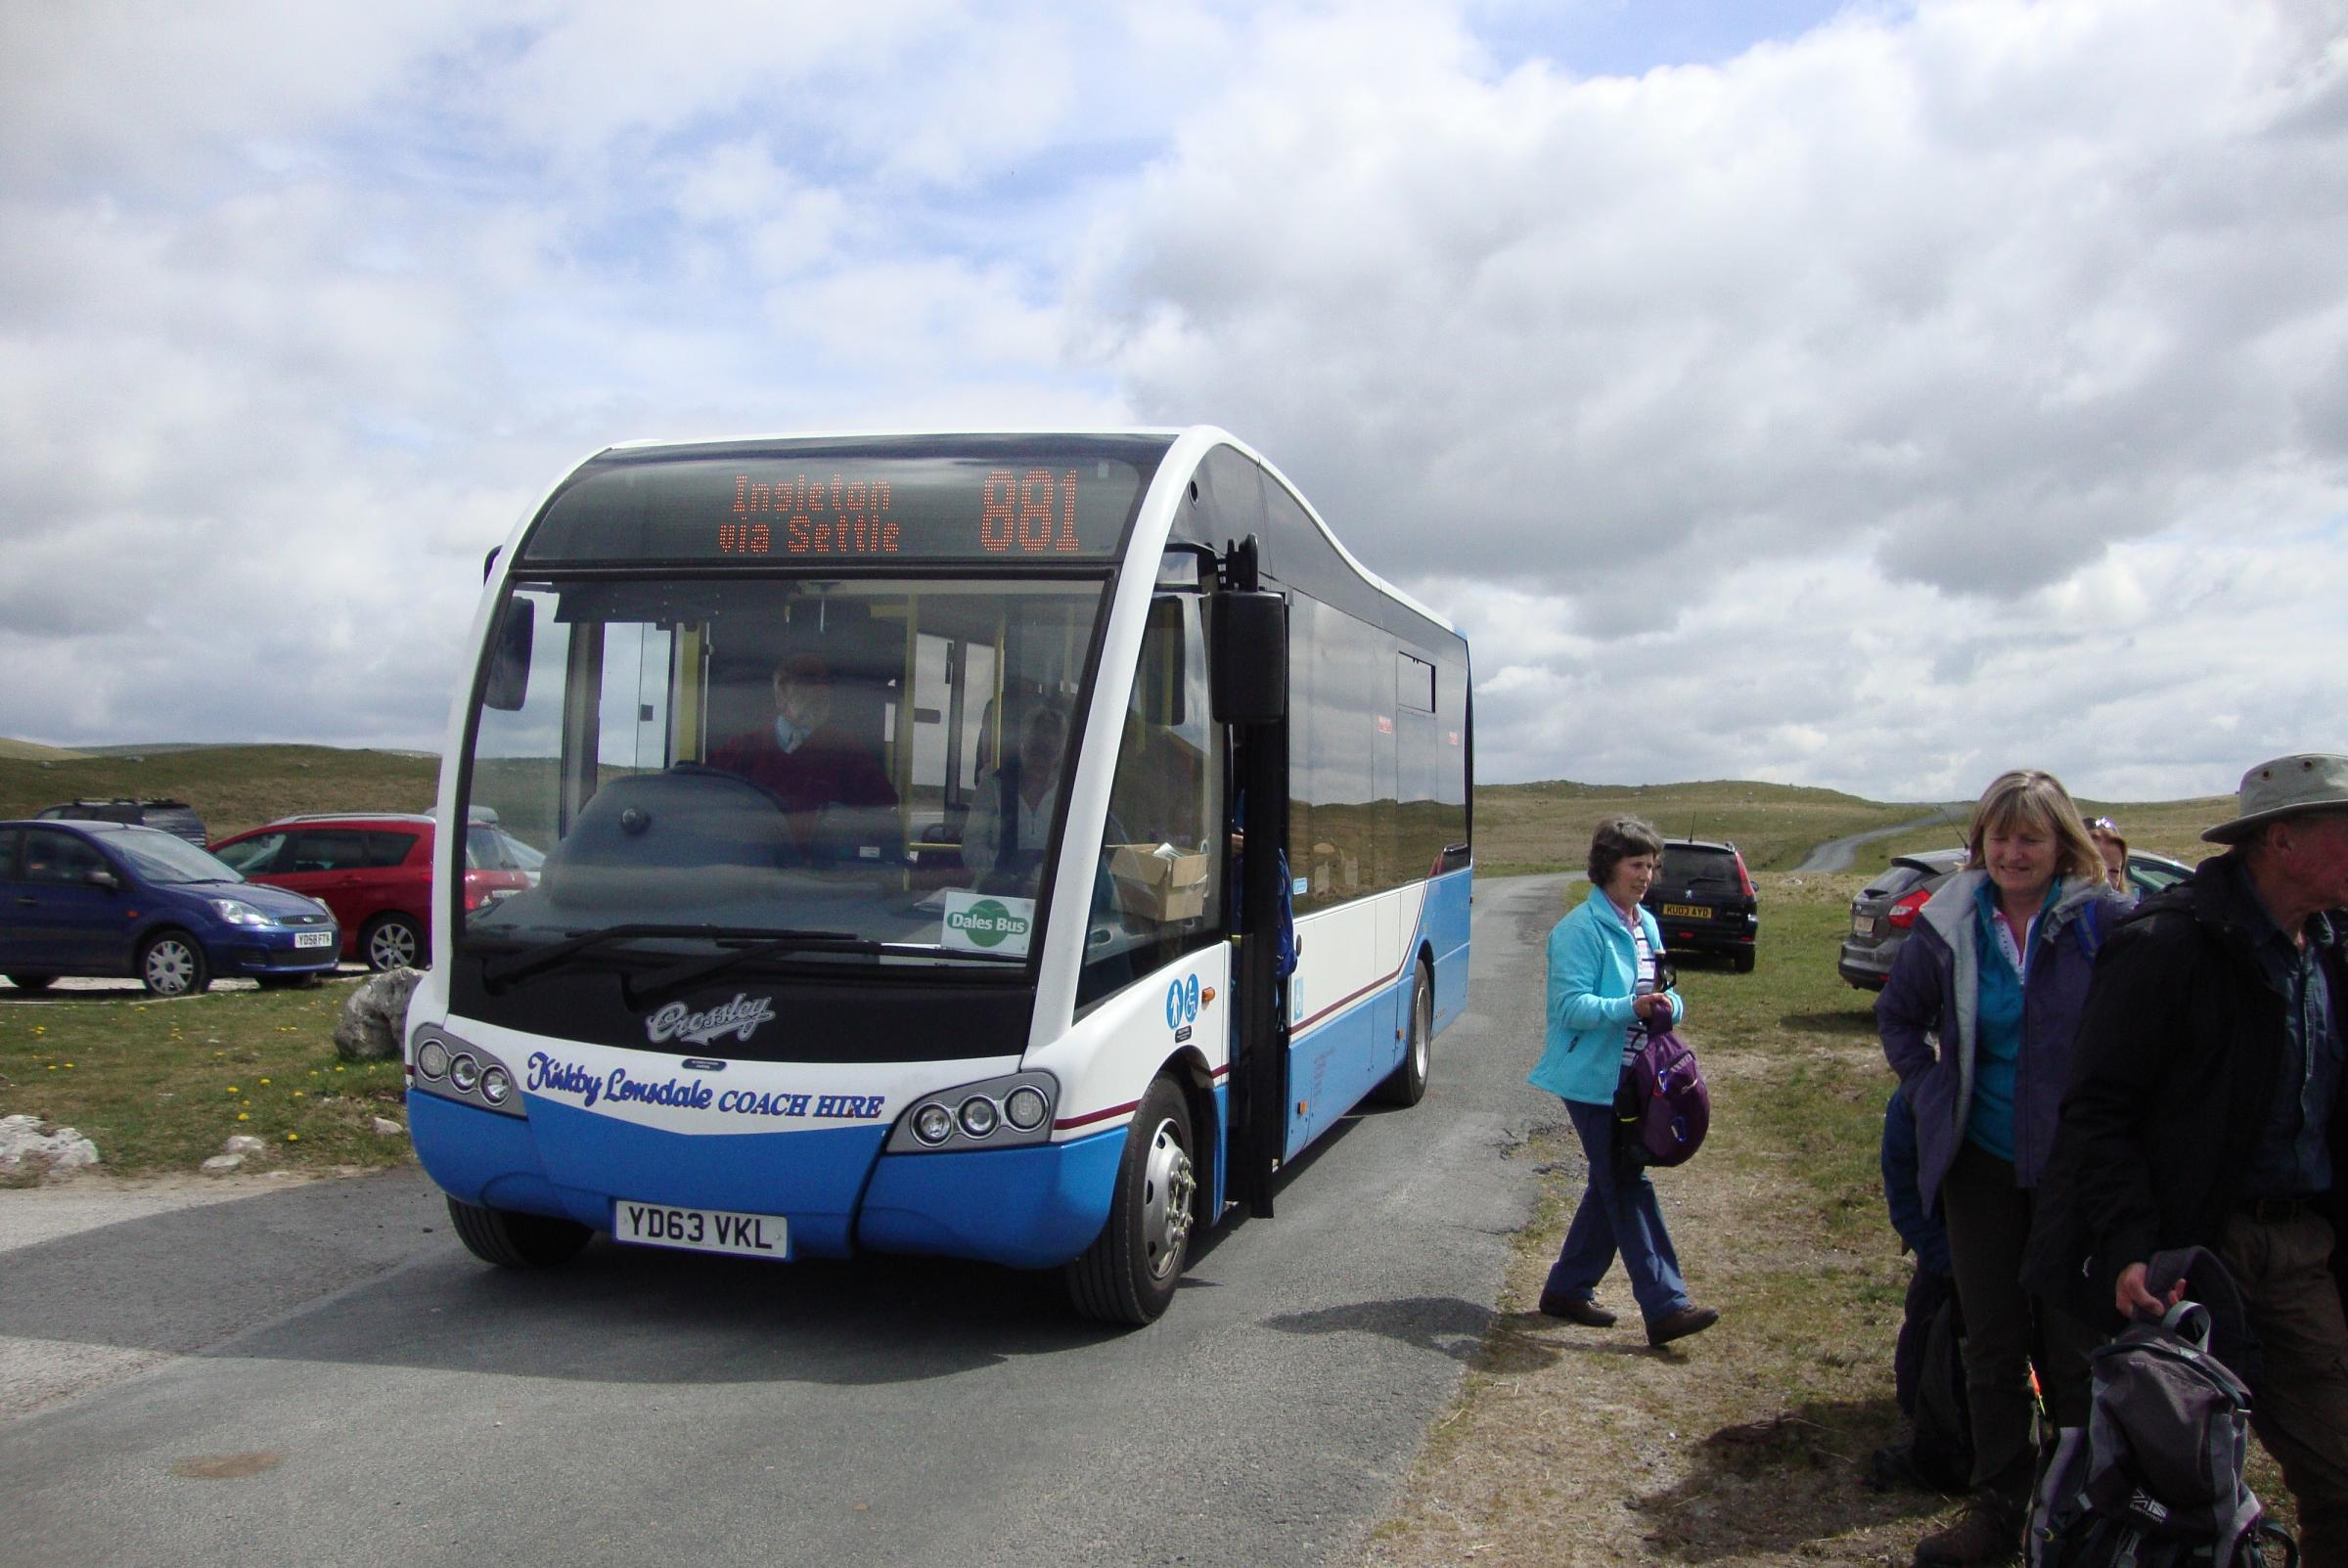 YORKSHIRE DALES NATIONAL PARK AUTHORITY: Charity's plea for bus funding rejected